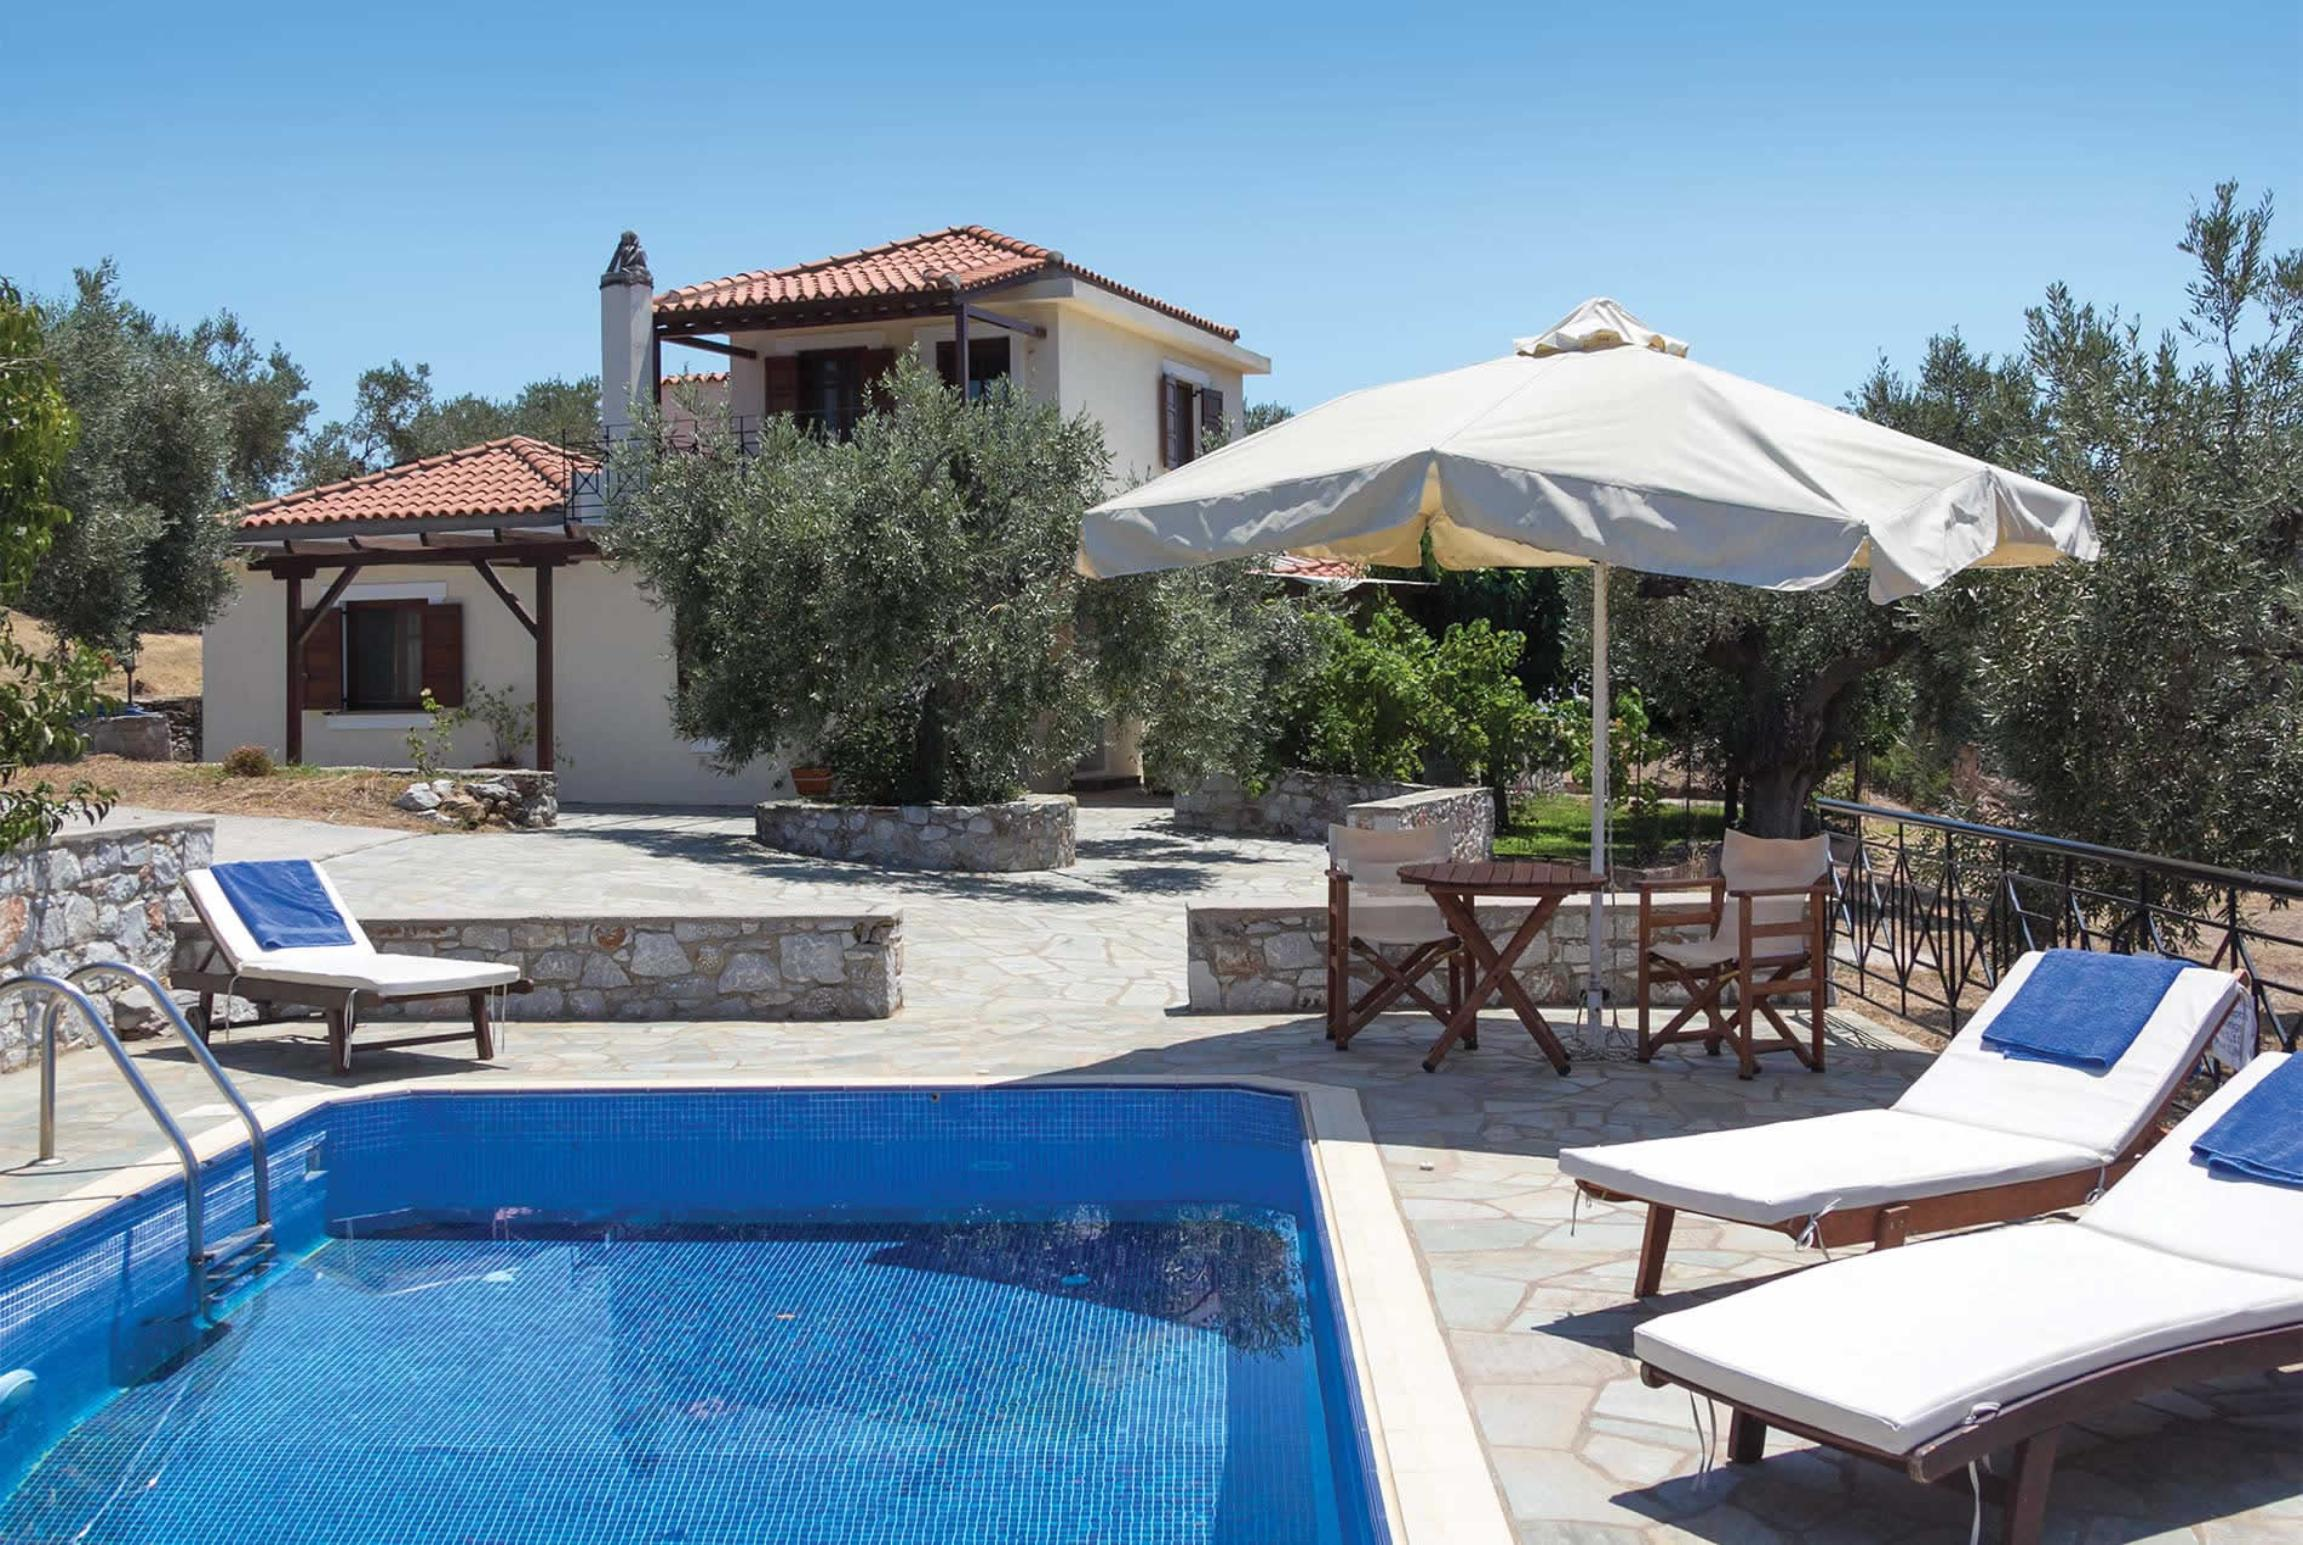 Read more about Nektaria villa